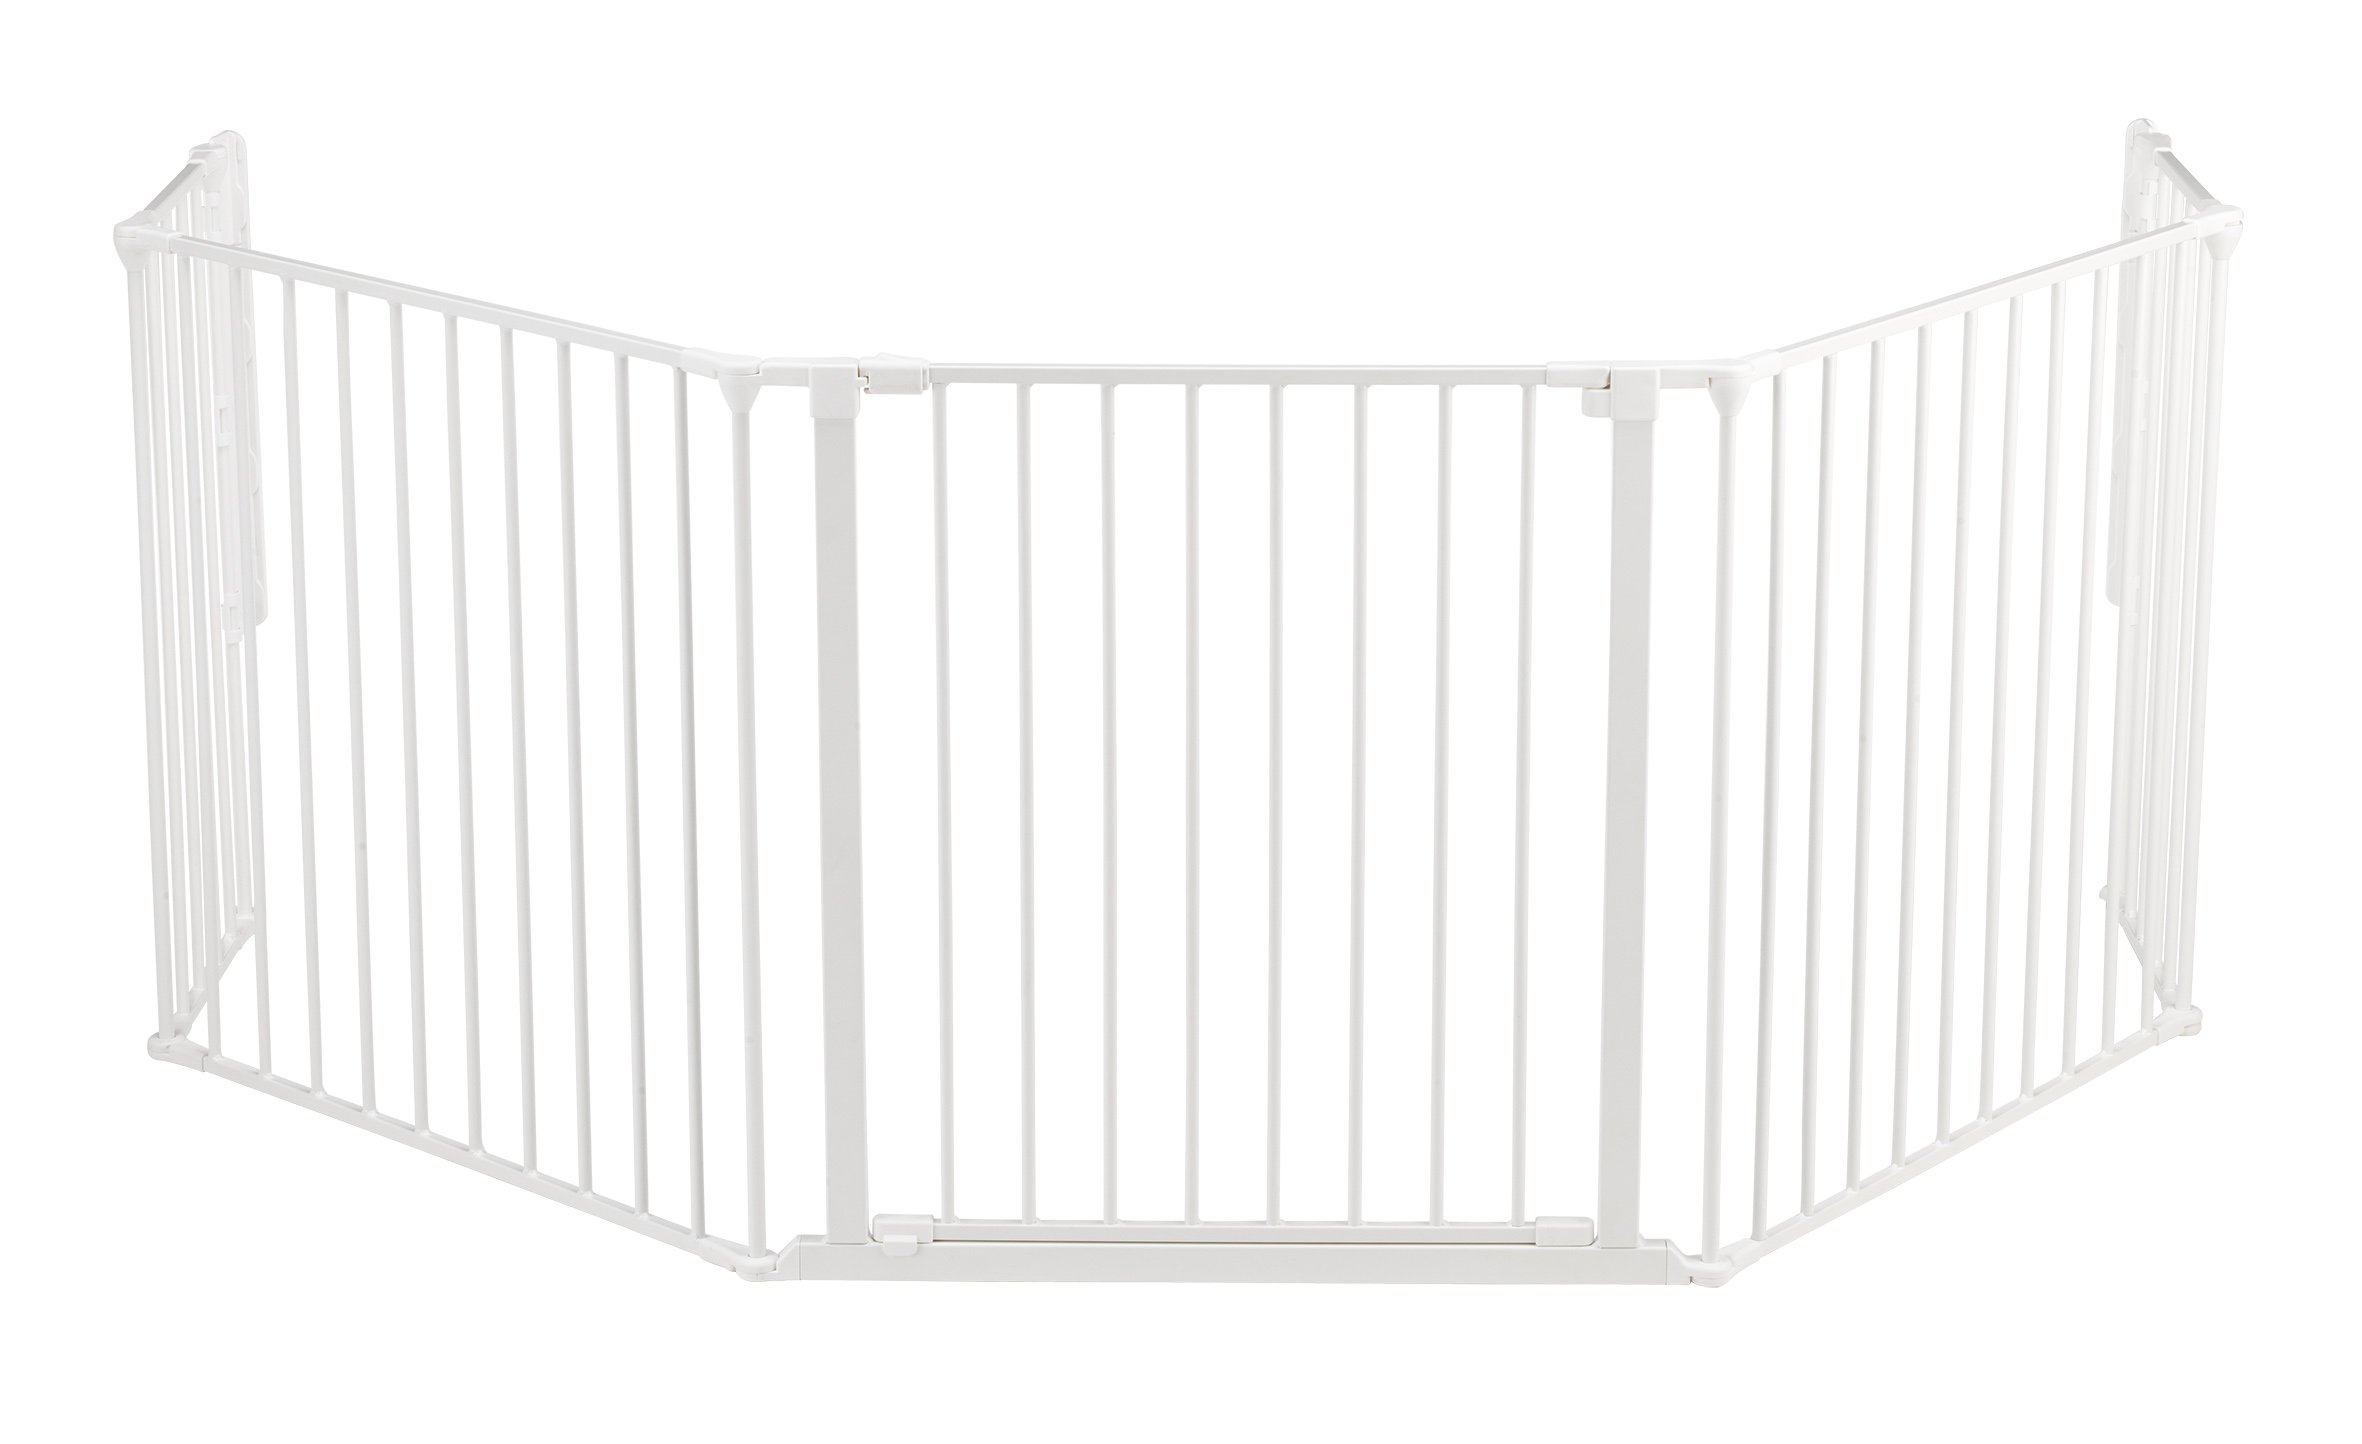 BabyDan Configure (Large 90-223cm, White)  Only configure system fulfilling newest European safety standard Multi purpose room divider and gate for wider openings Flexible and easy to fit 2